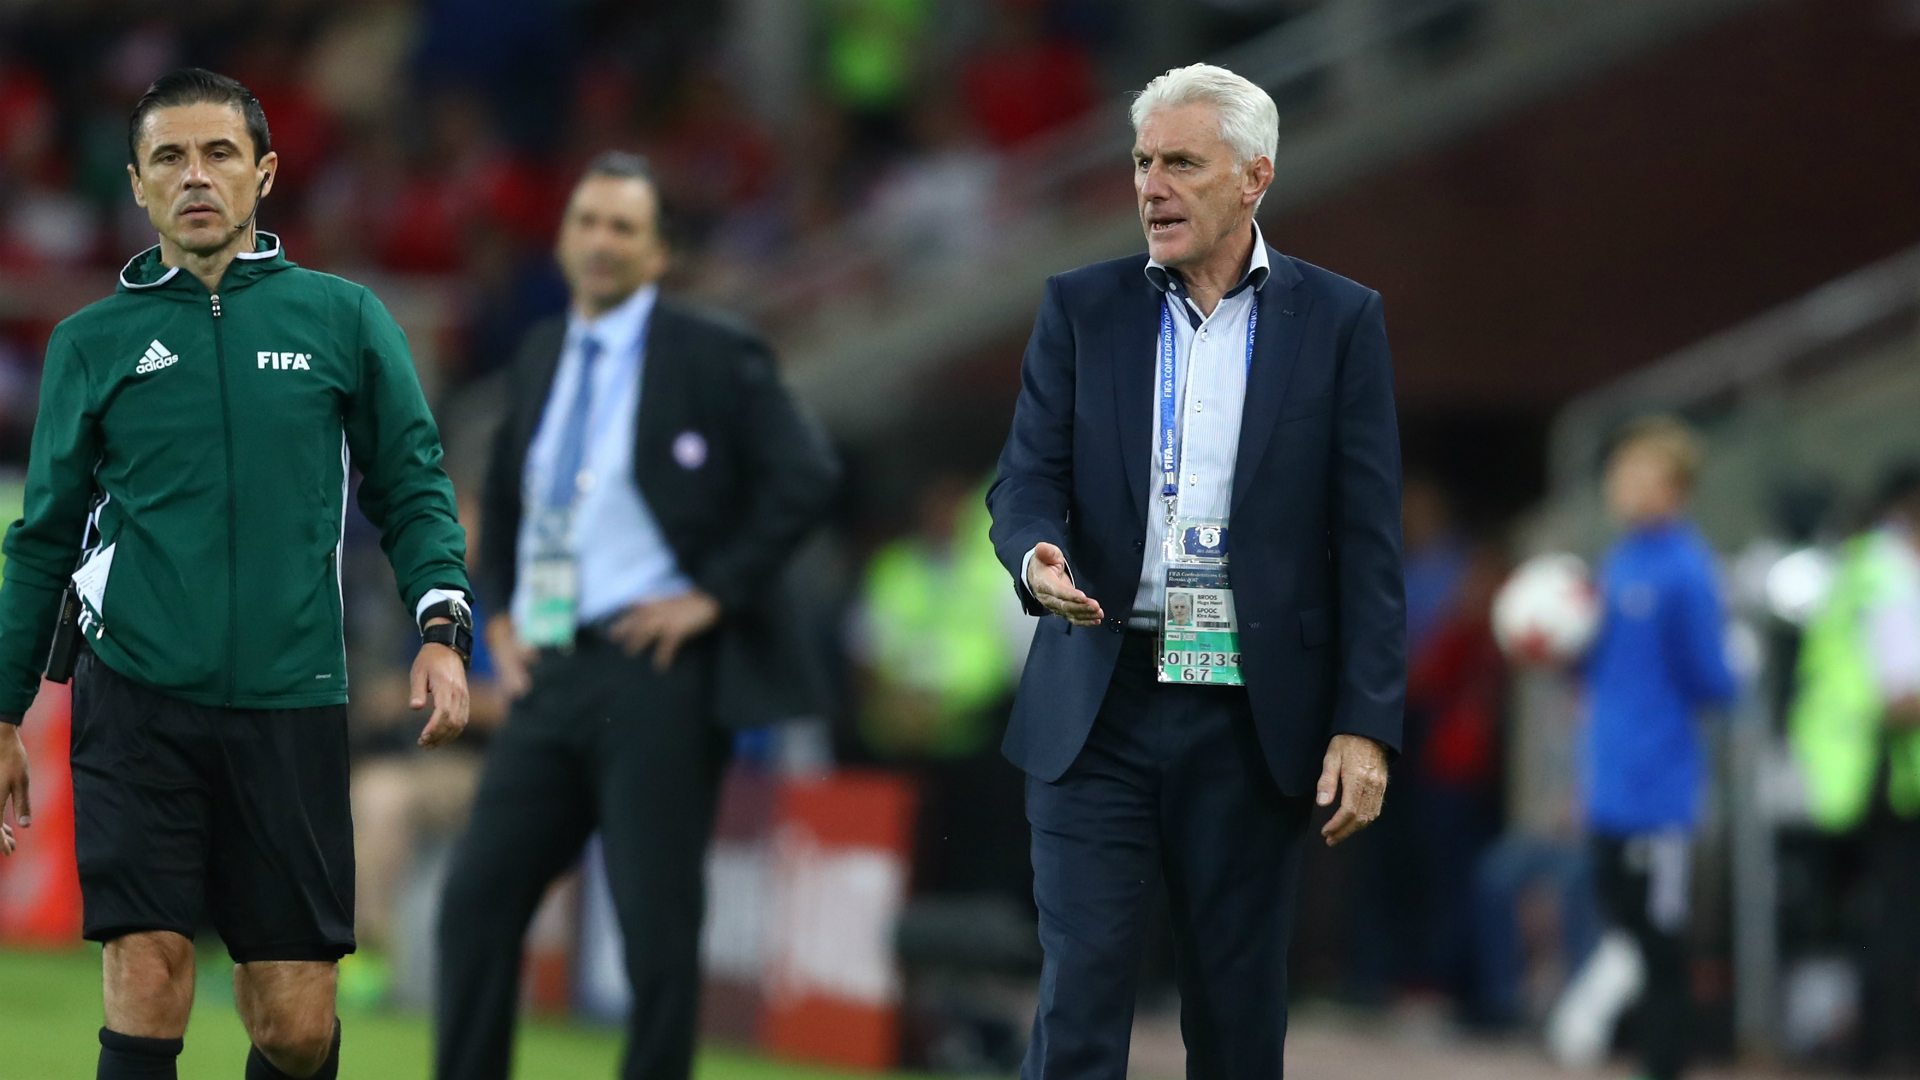 Confed Cup: Germany hold Chile to 1-1 draw